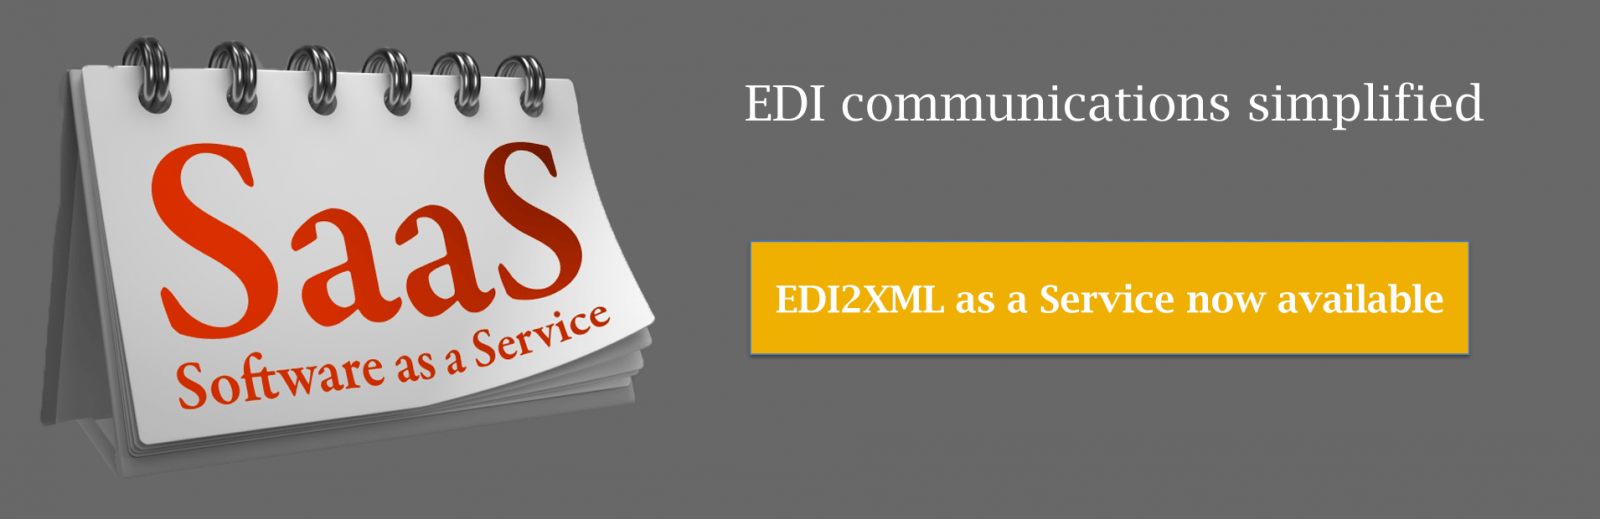 Advantages of EDI translation as a service